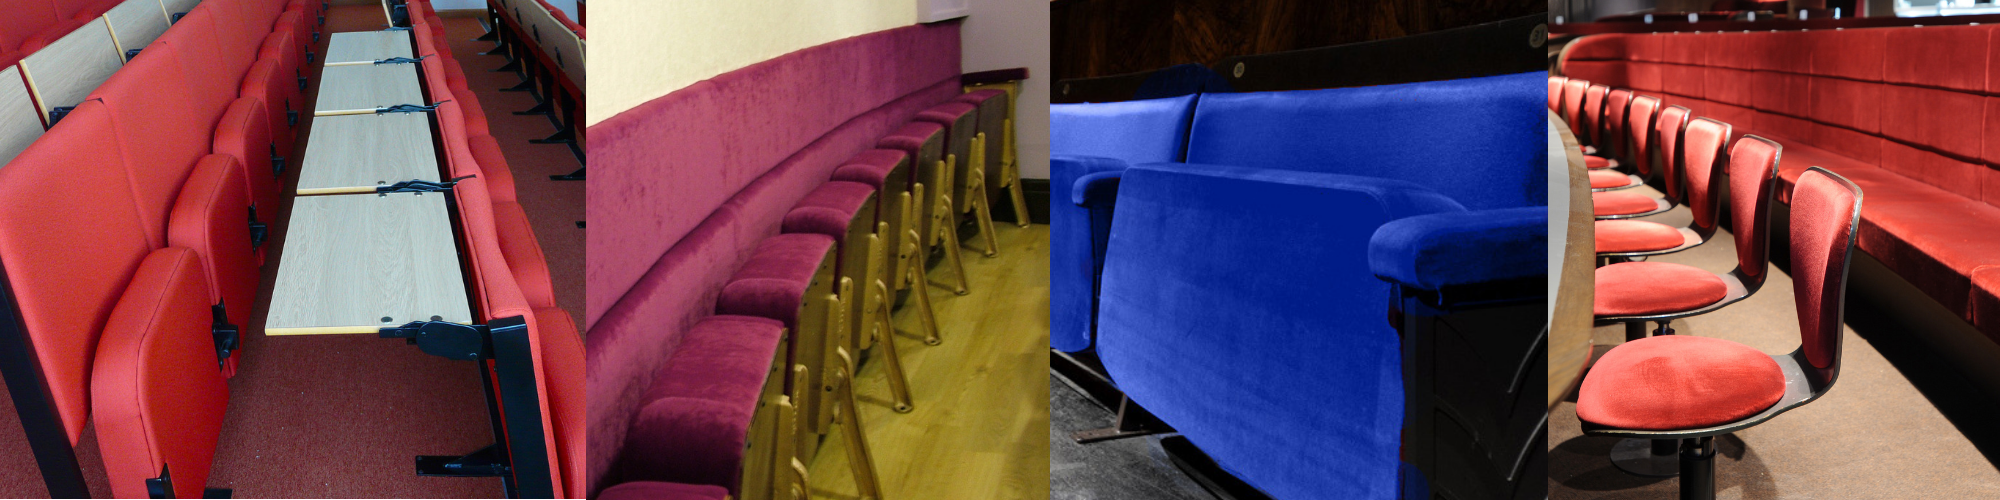 Range of different bespoke auditorium and theatre seating manufactured by Evertaut